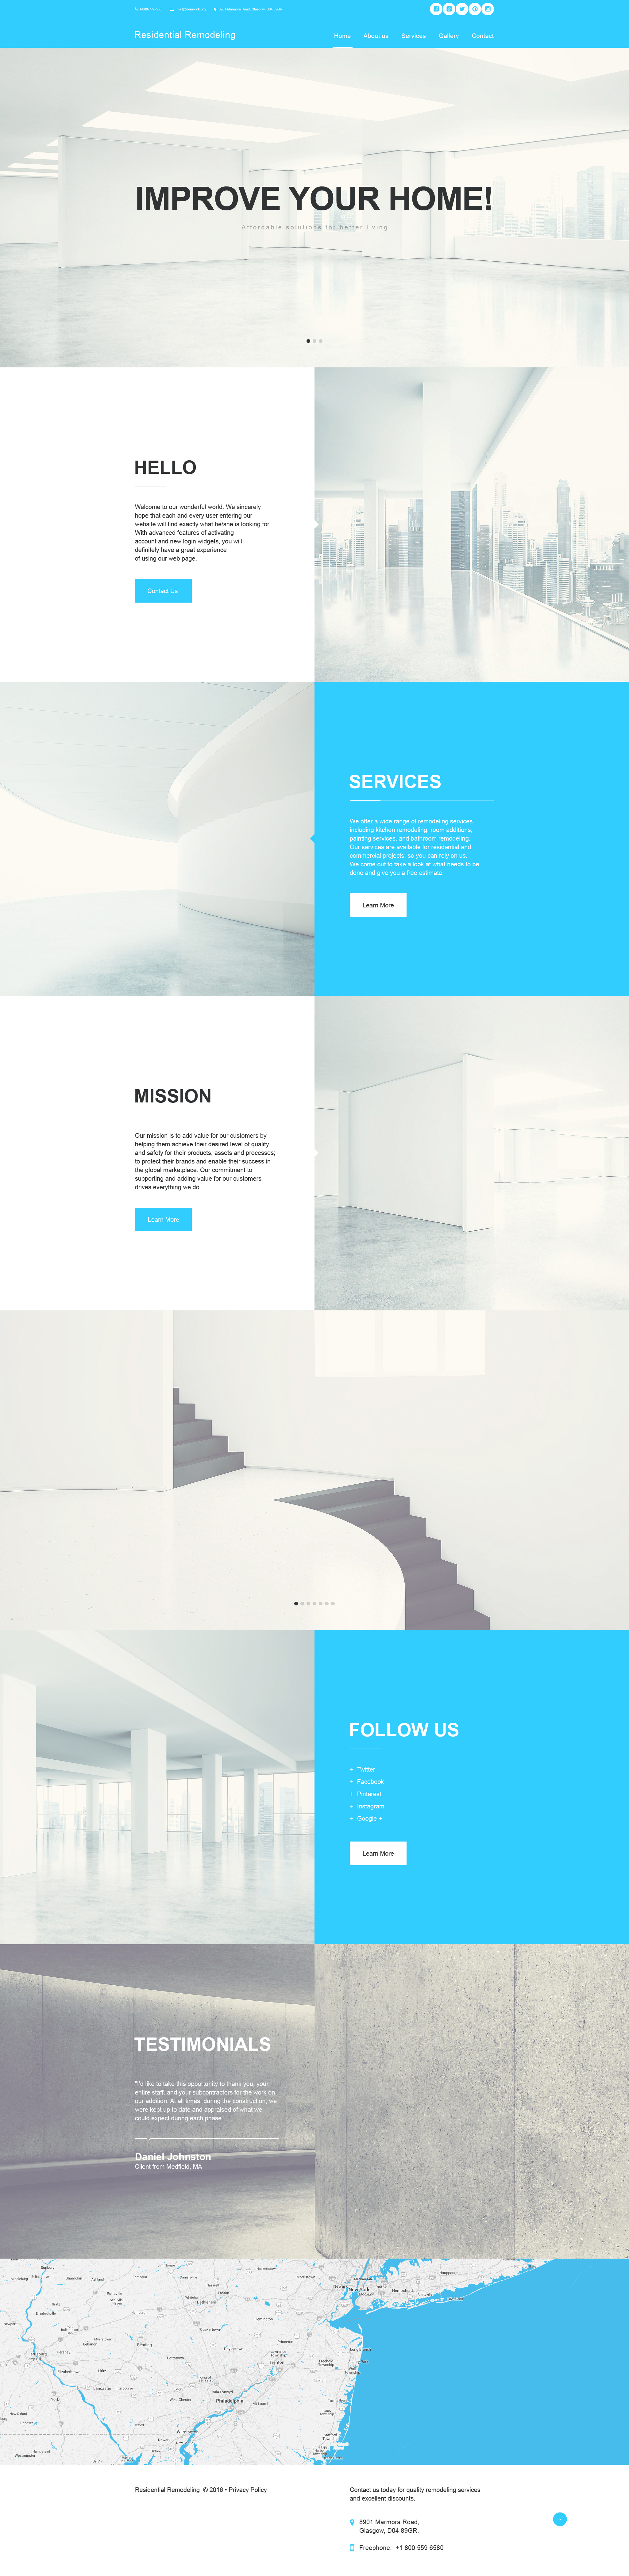 Home Remodeling Muse Template